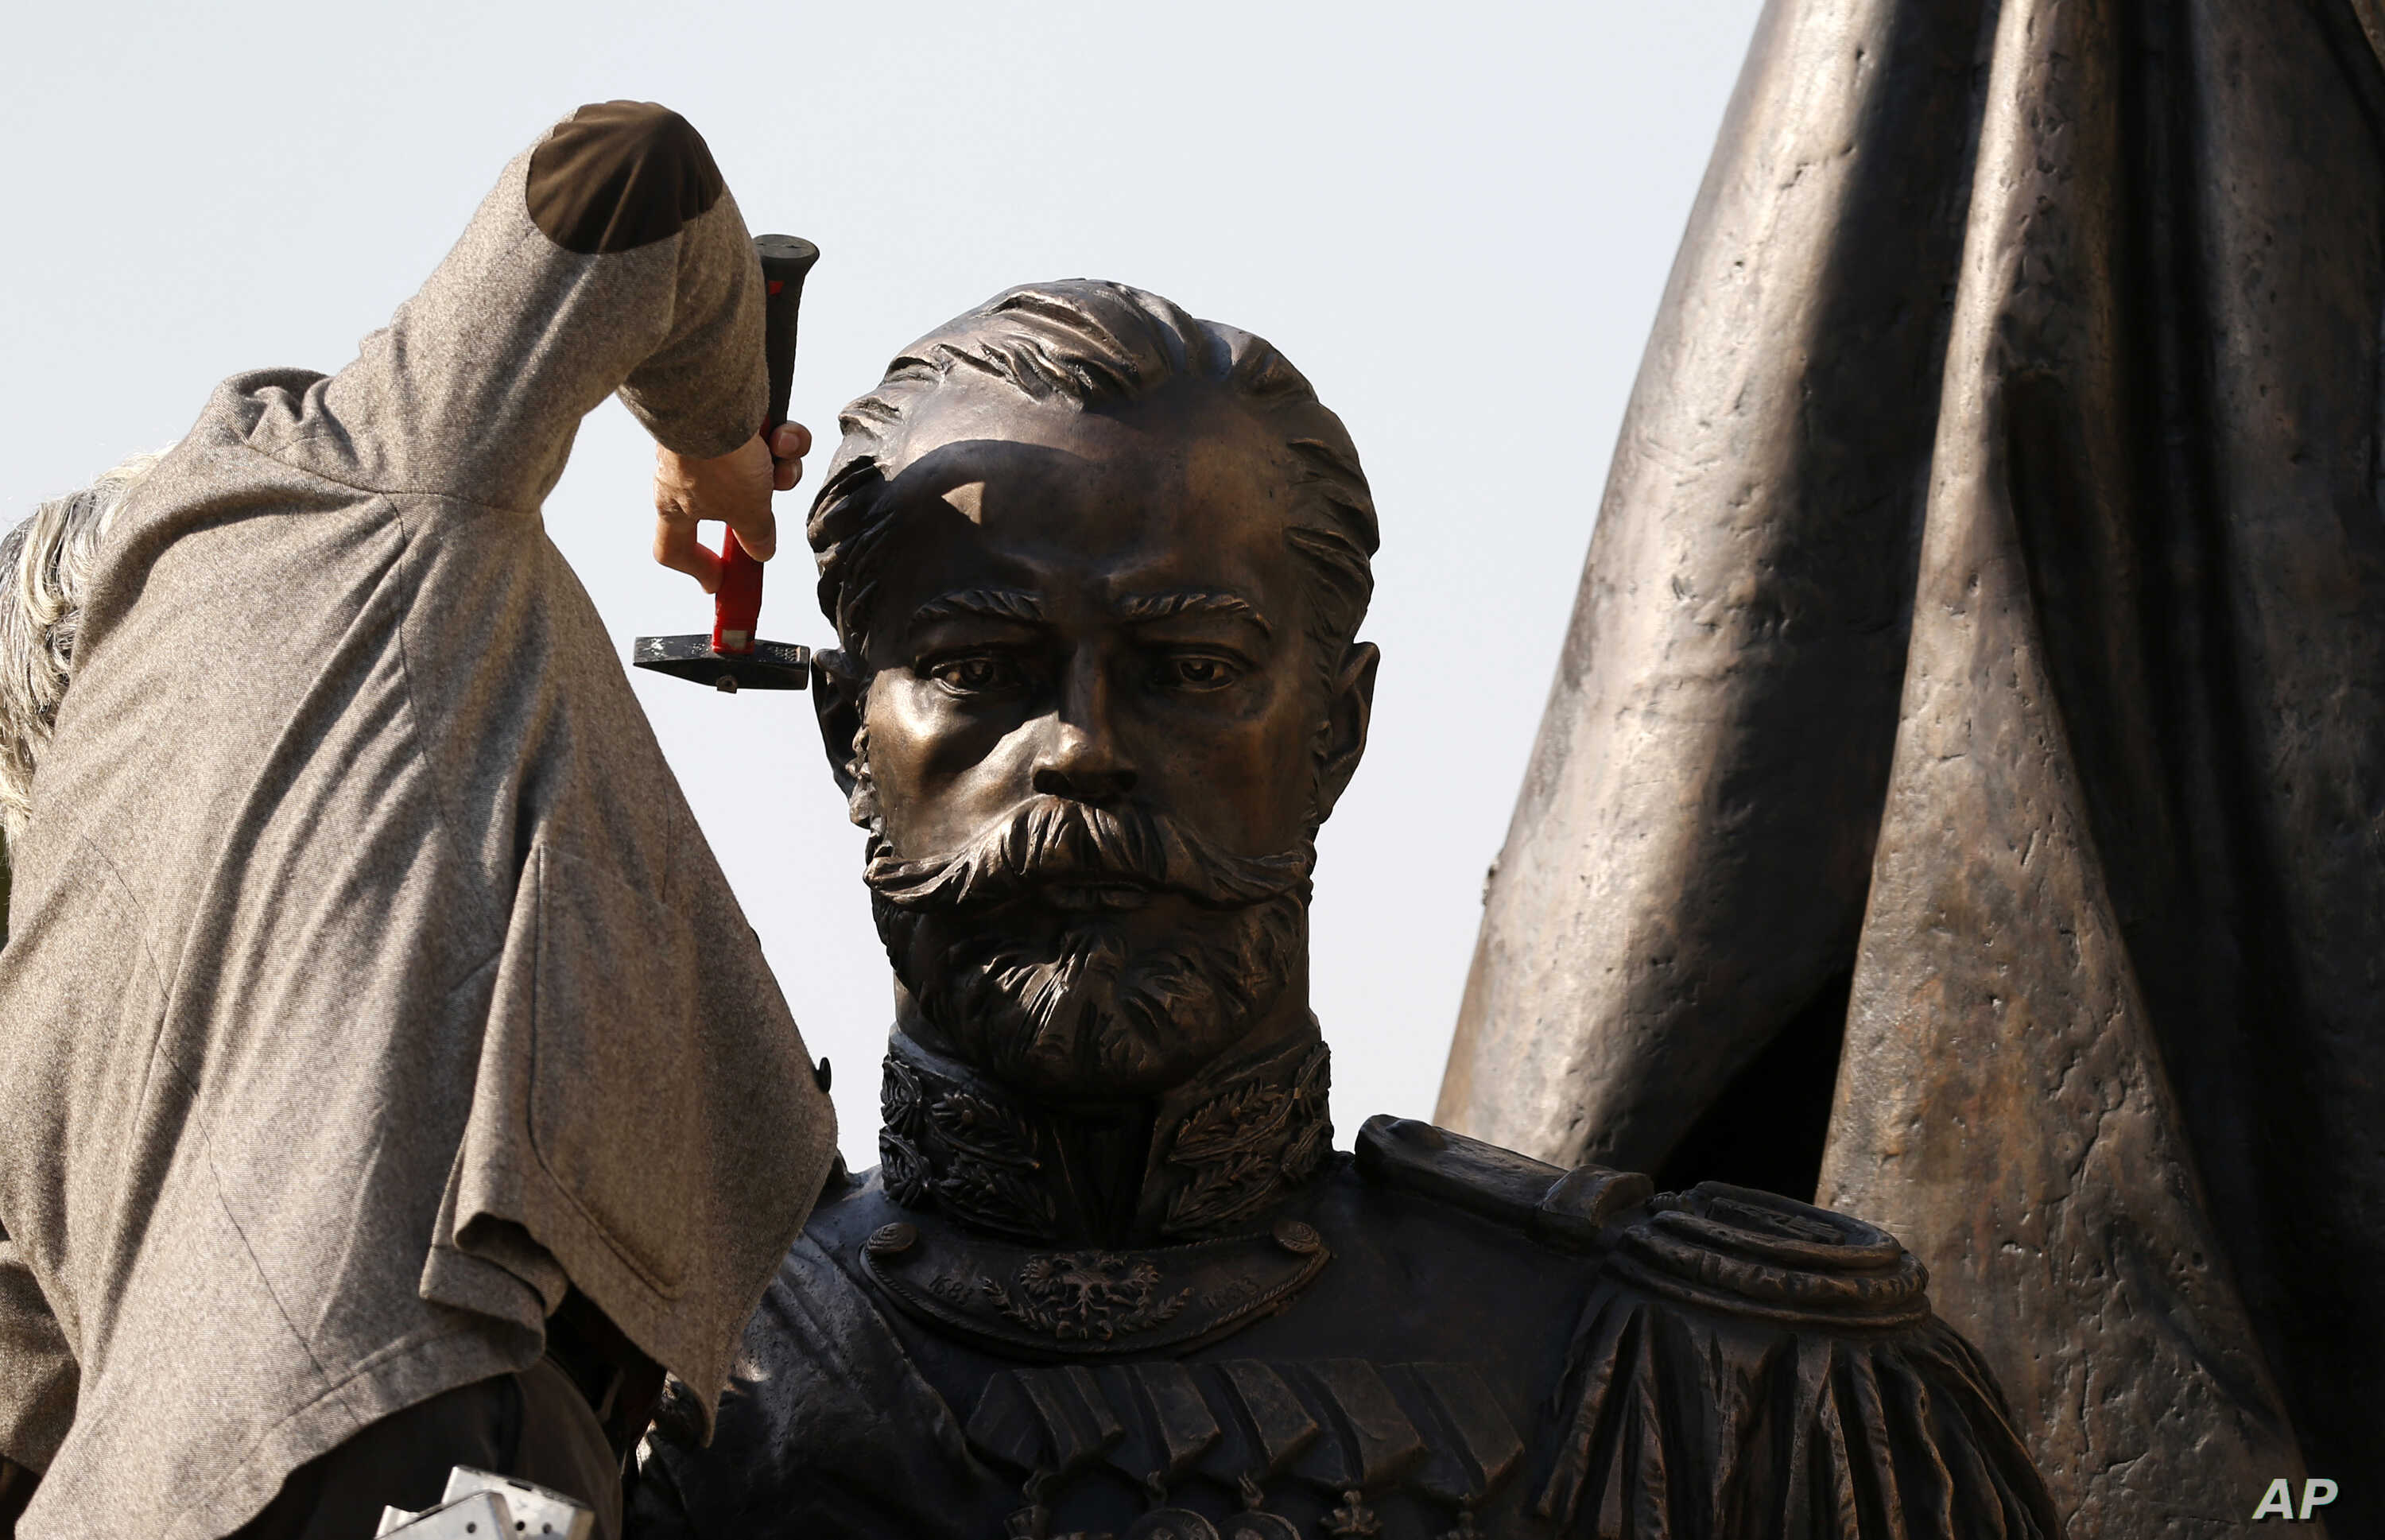 FILE - A worker prepares a new statue of Russia's last Czar, Nicholas II, in downtown Belgrade, Serbia, Oct. 13, 2014. Moscow has been slowly losing its clout in Eastern Europe, as countries have joined NATO and the EU.